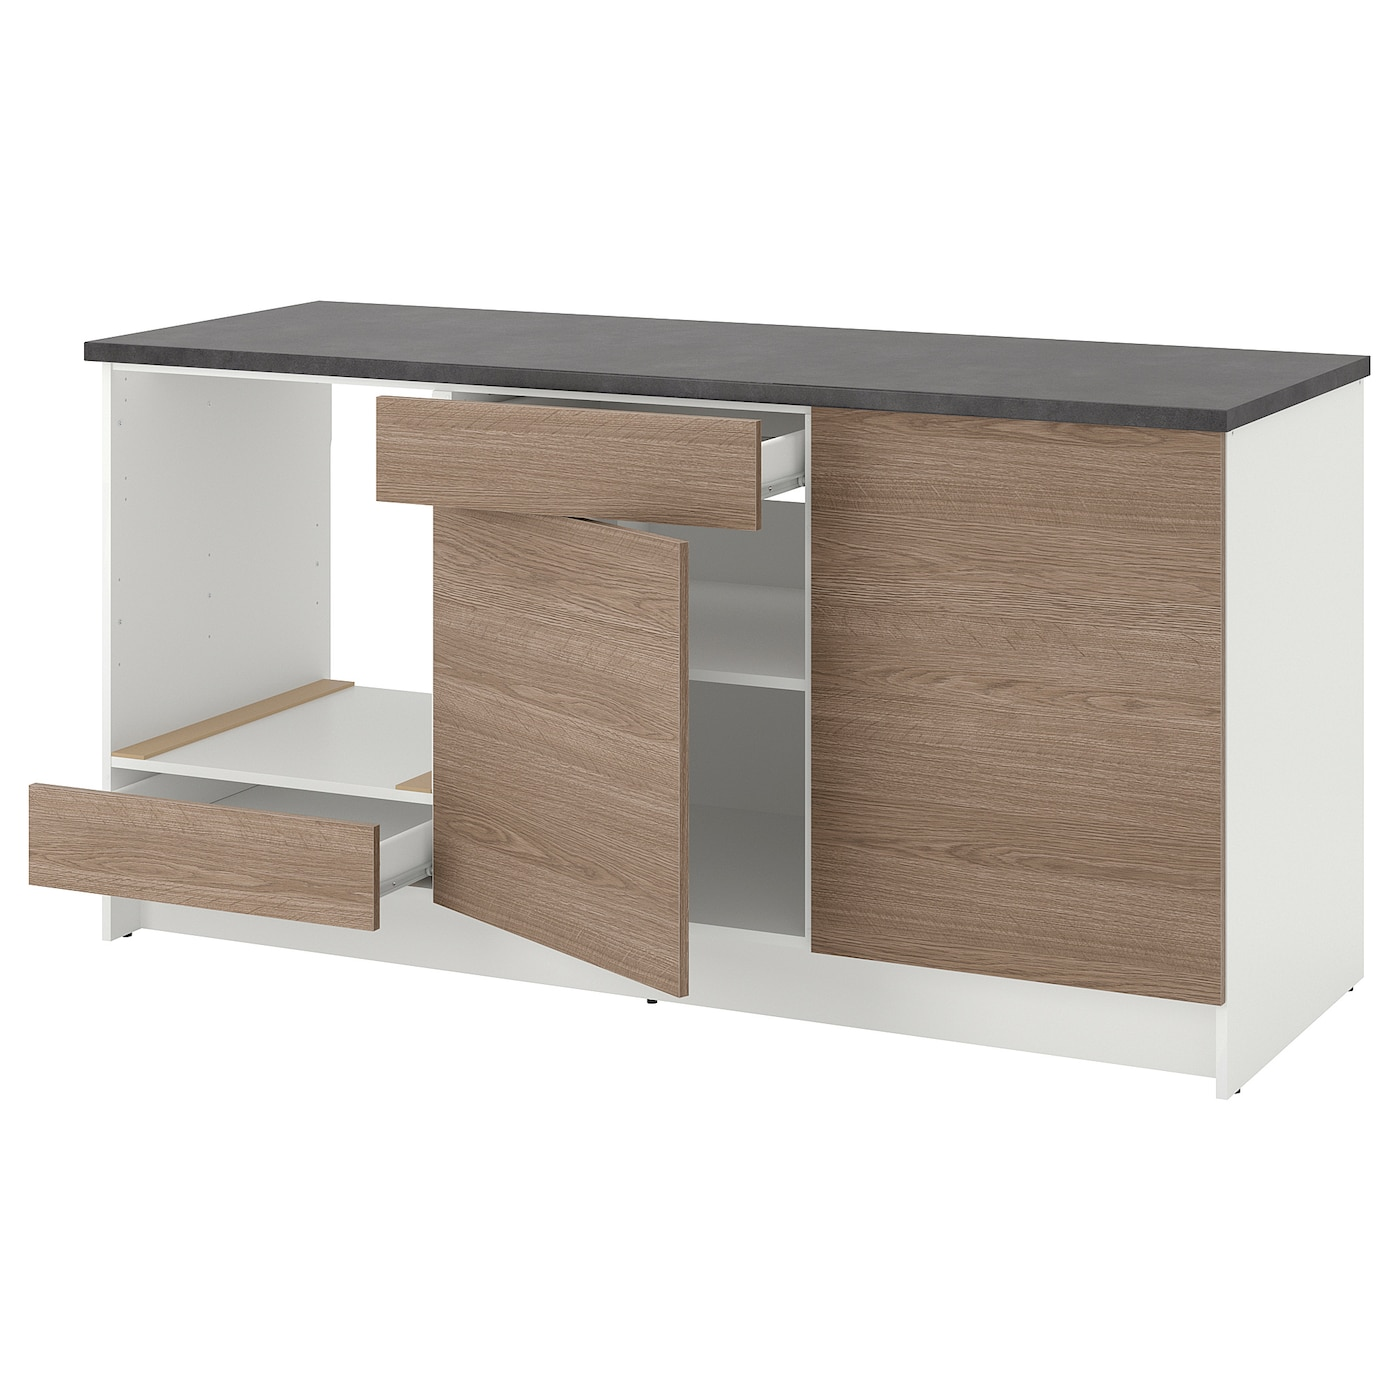 IKEA KNOXHULT base cabinet with doors and drawer Only to be used with glass ceramic hob or gas hob.